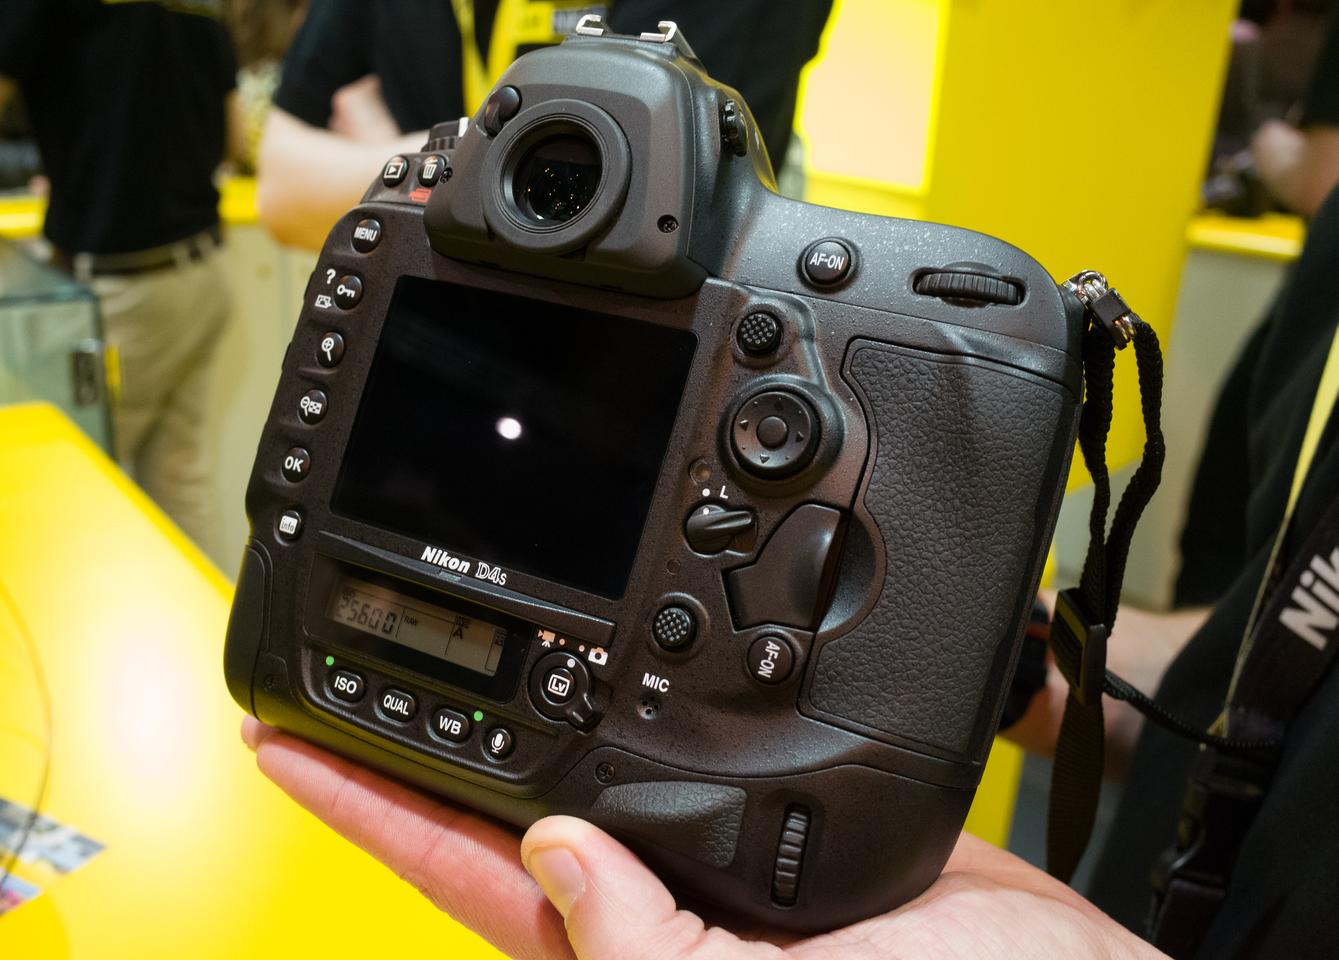 The Nikon D4S has a number of subtle design update to its grips and buttons